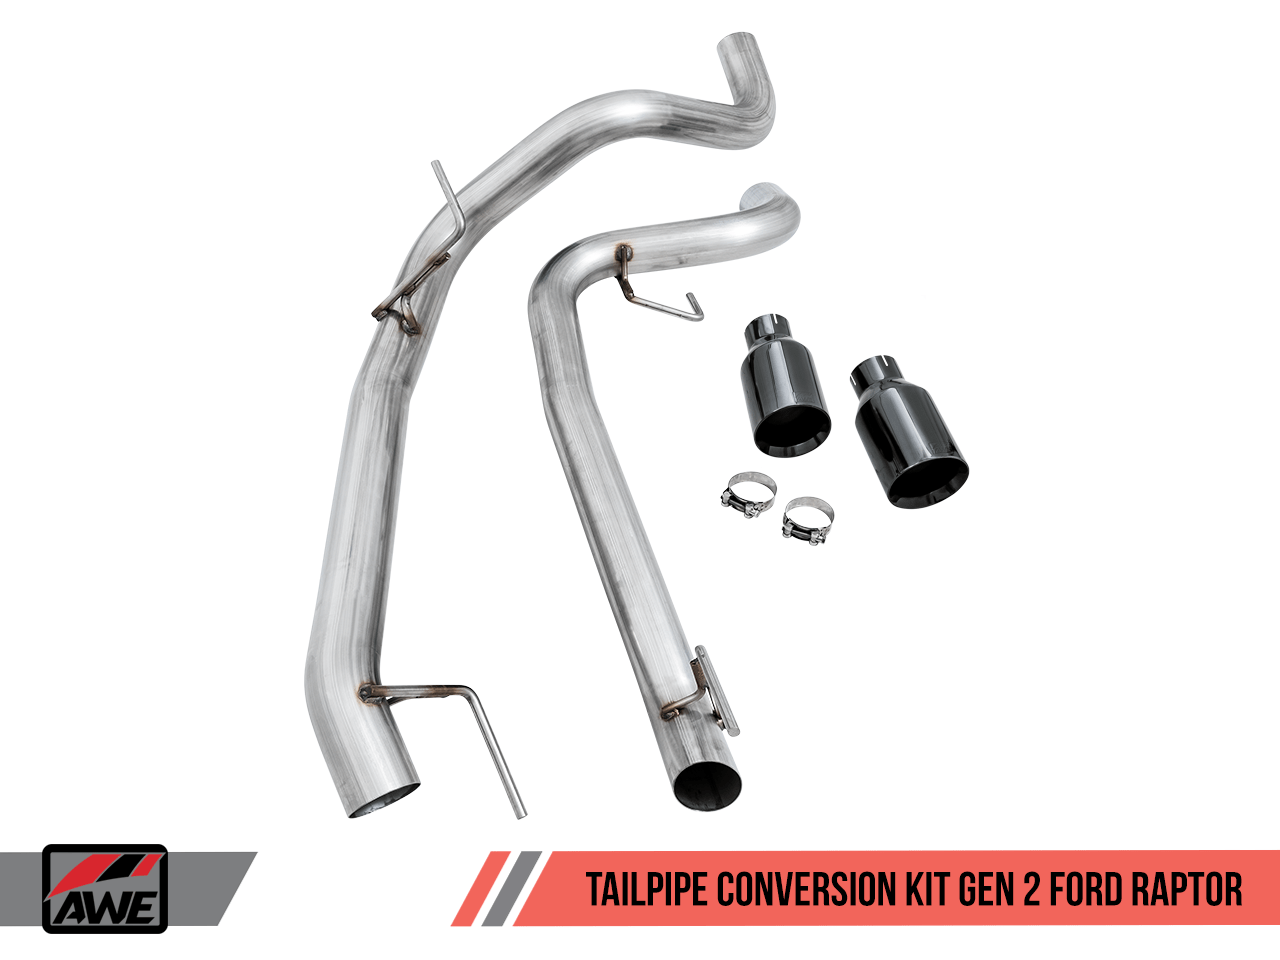 awe fg exhaust suite for the gen 2 ford